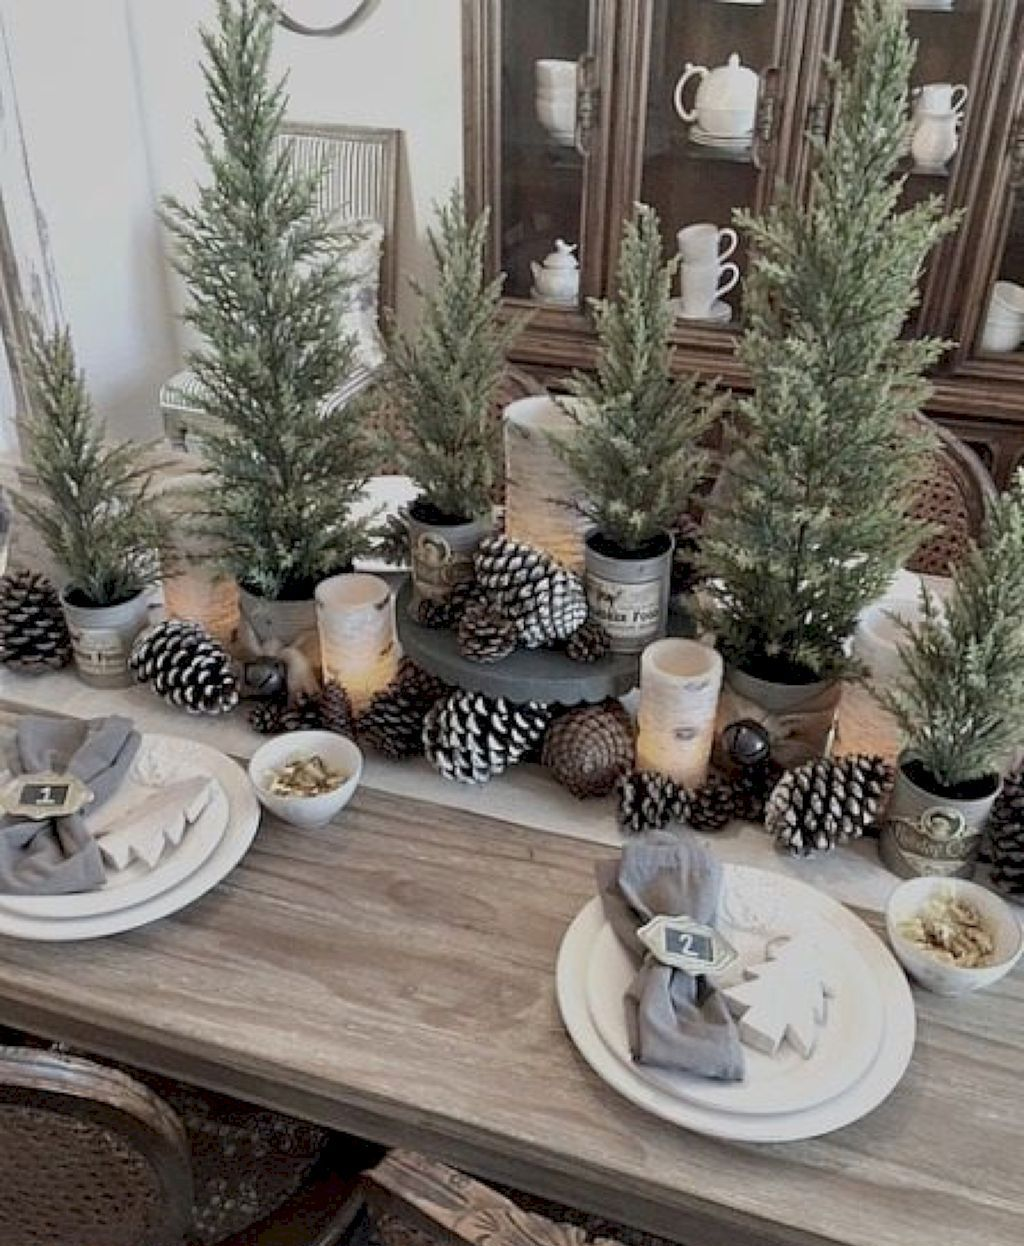 35 Cute Farmhouse Christmas Decor And Design Ideas With Images Christmas Table Decorations Christmas Tablescapes Christmas Dining Table